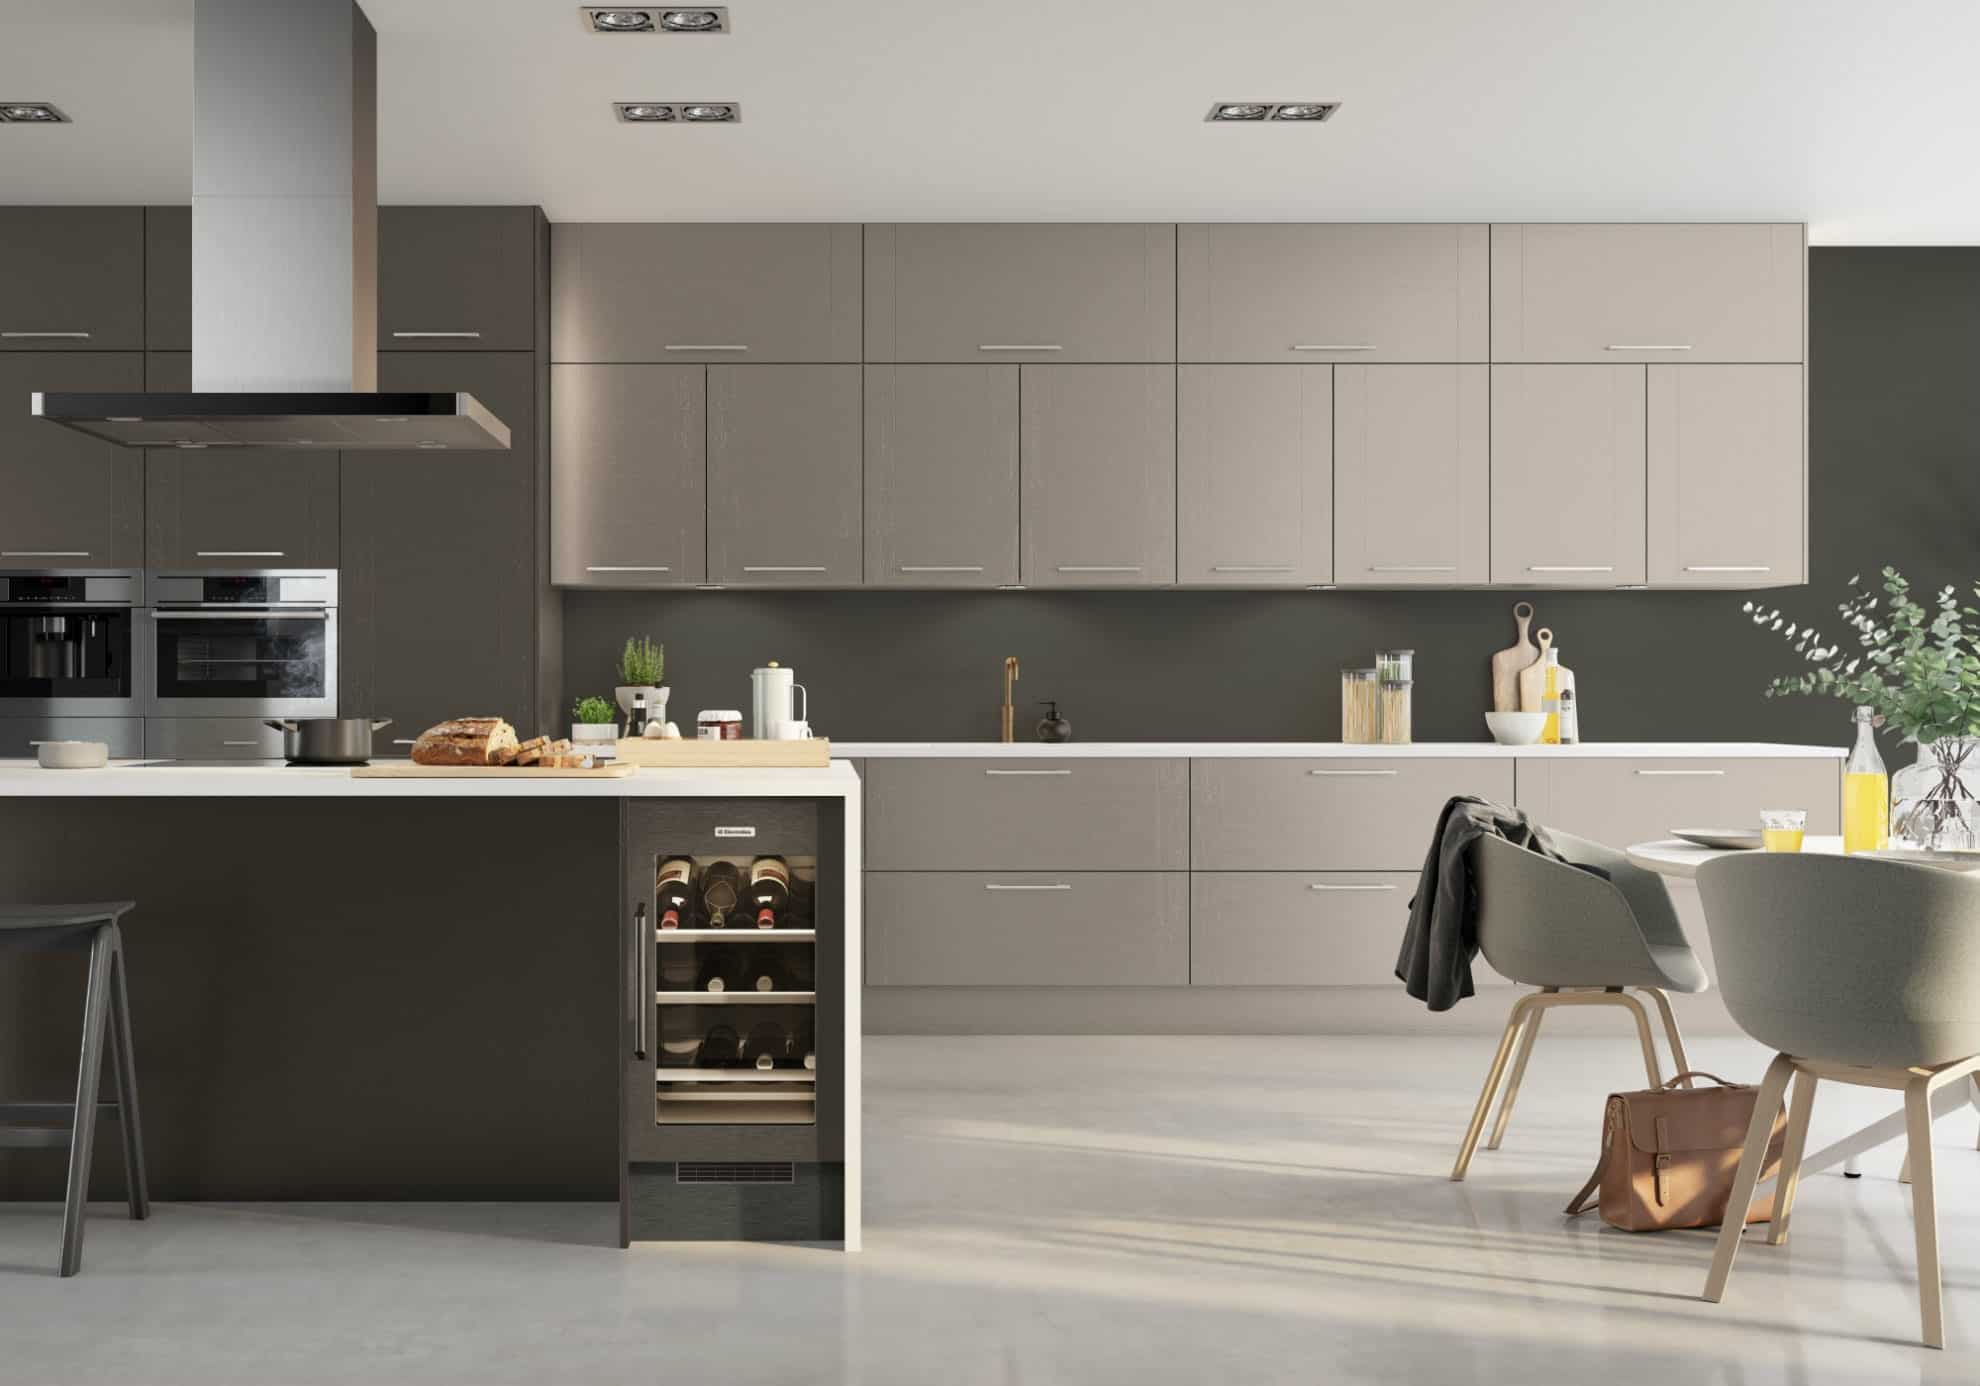 Maine kitchen in cashmere and stone